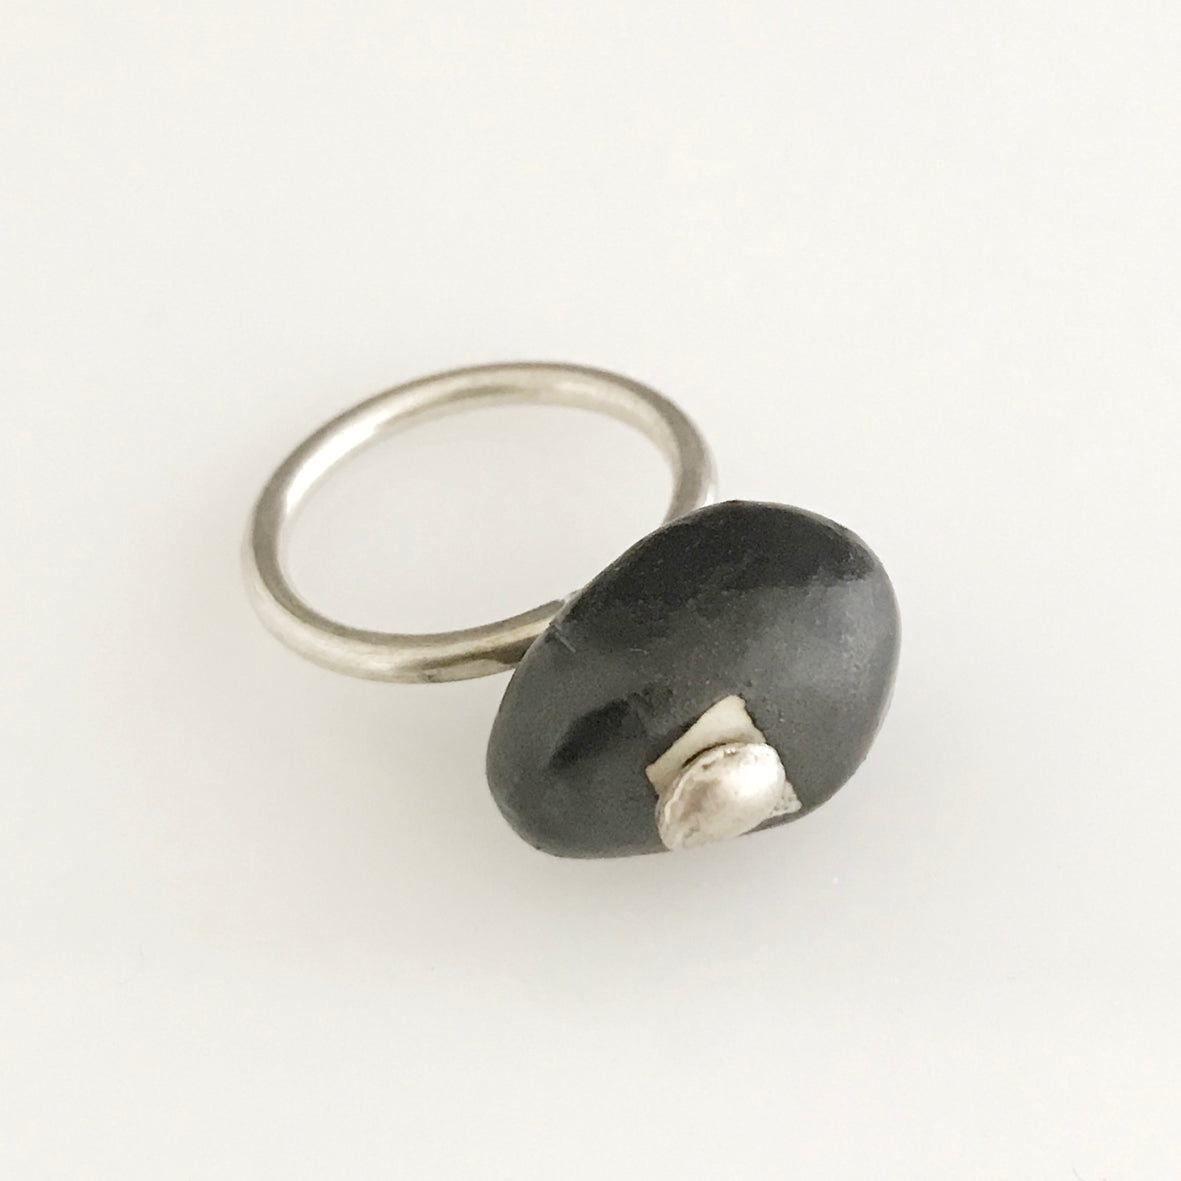 Black porcelain stone shaped silver ring